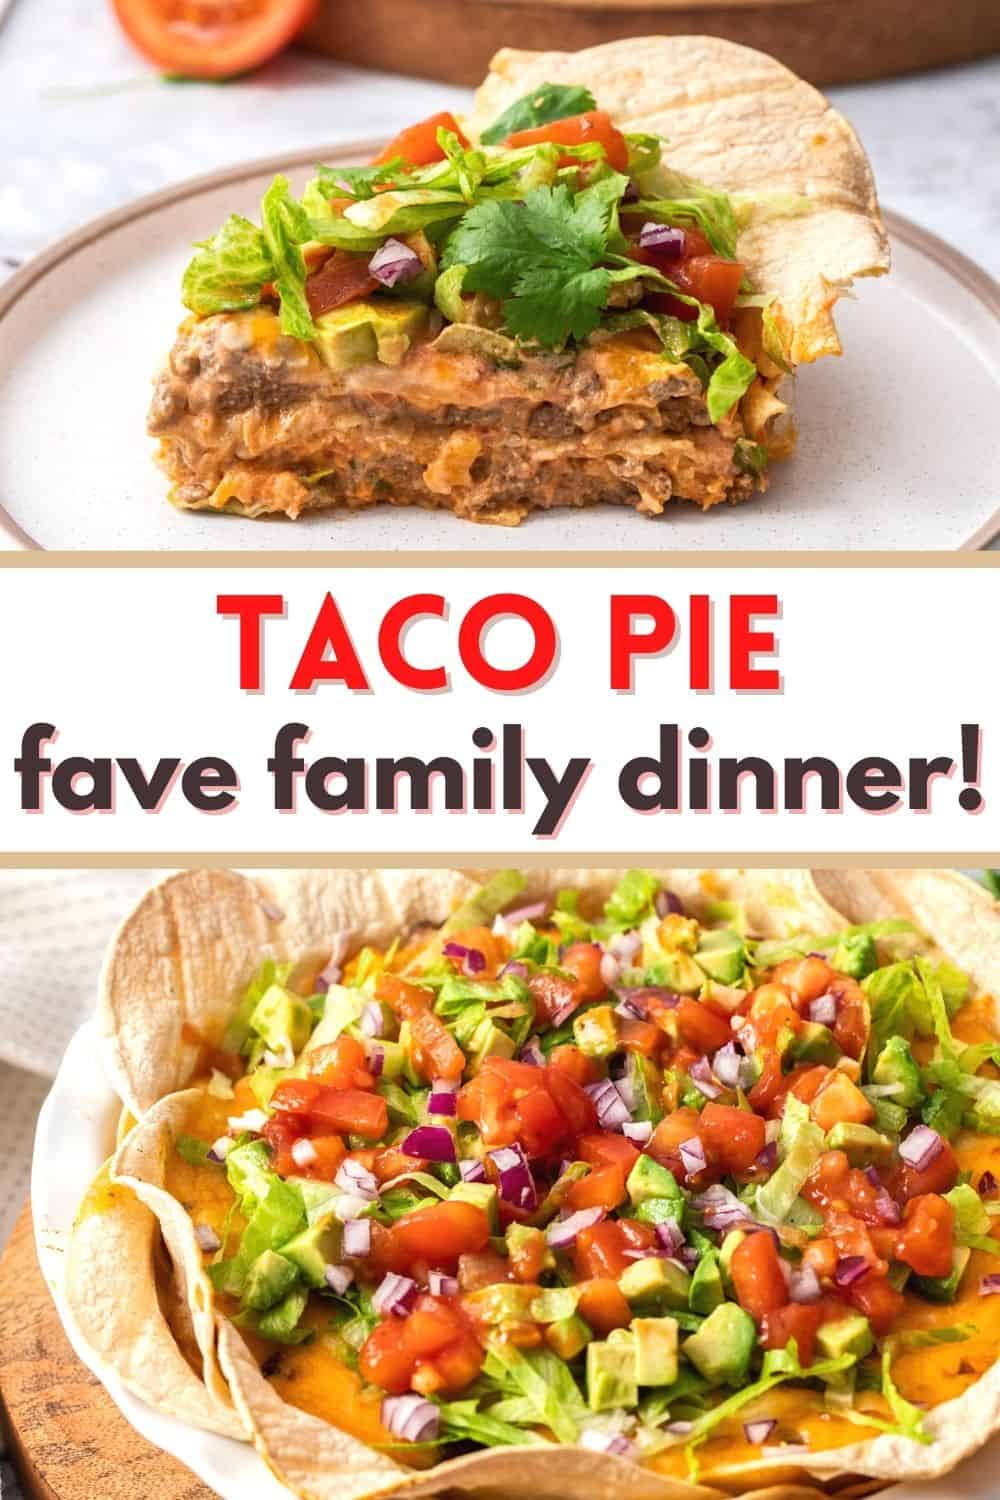 Taco pie includes your favorite taco fillings with a corn tortilla crust. An easy Mexican-style dinner the whole family loves!